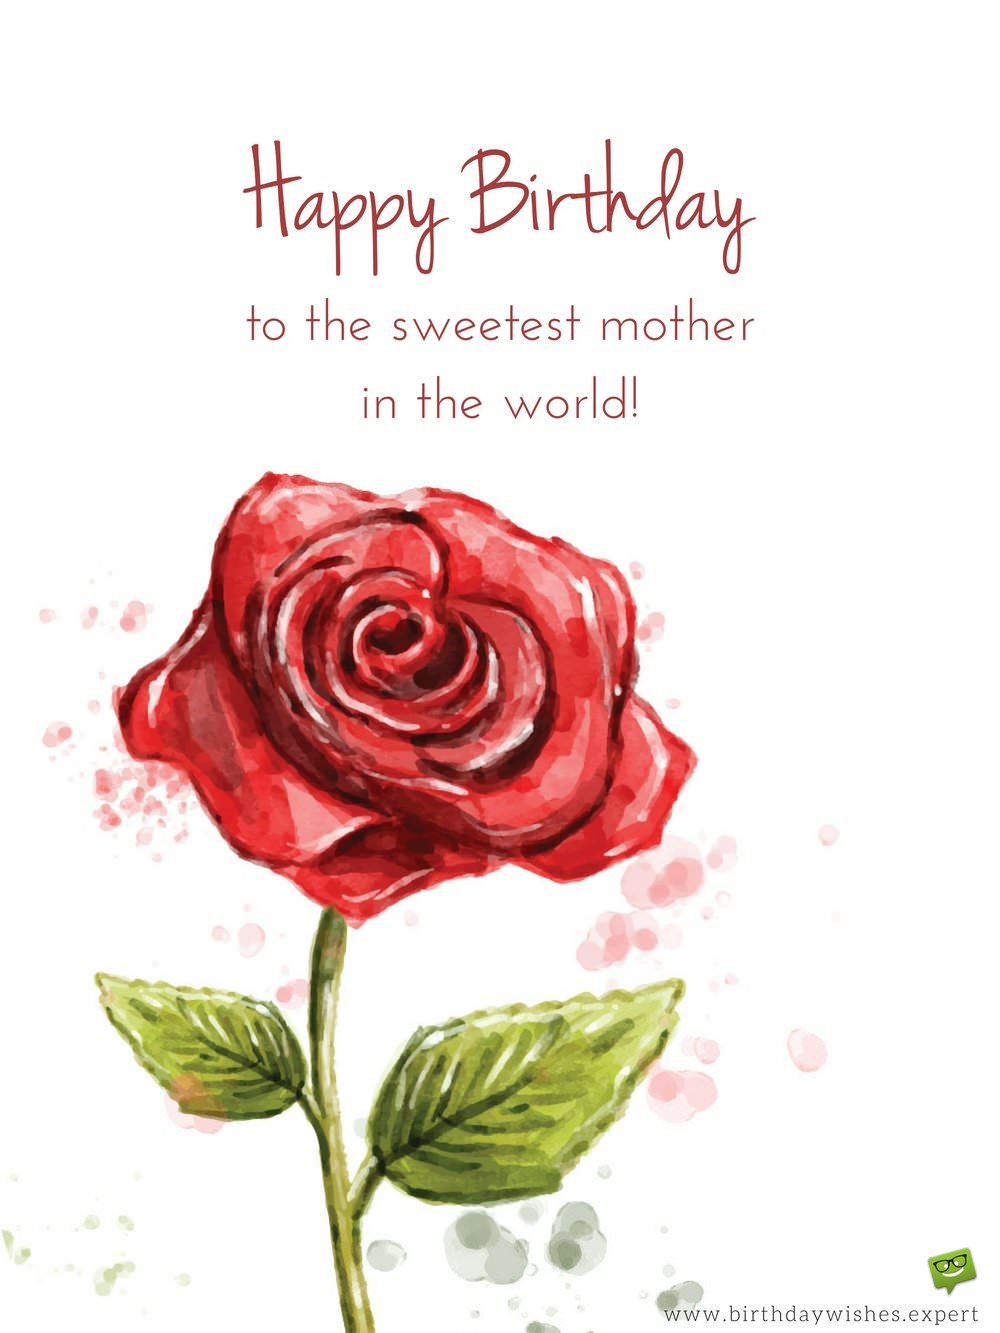 Best mom in the world birthday wishes for your mother happy birthday to the sweetest mother in the world m4hsunfo